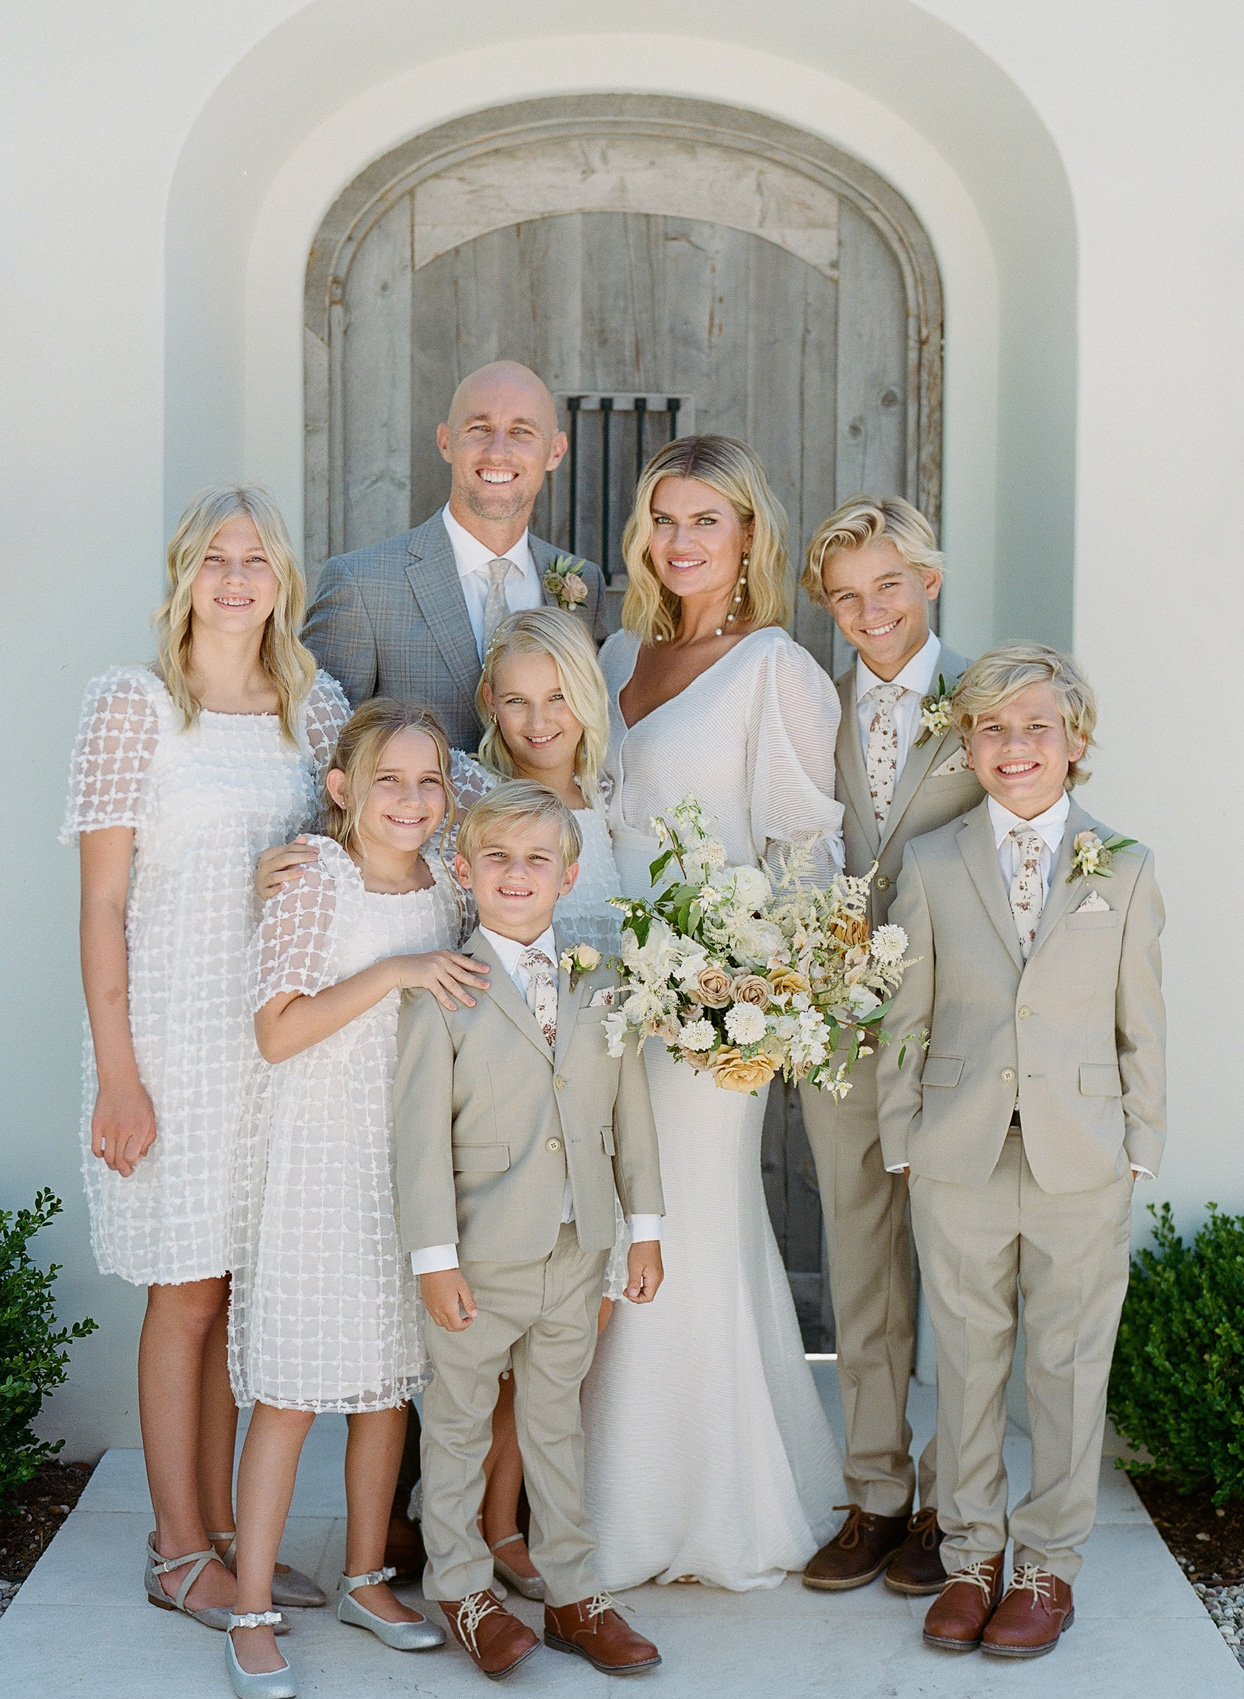 bride and groom standing with blended family